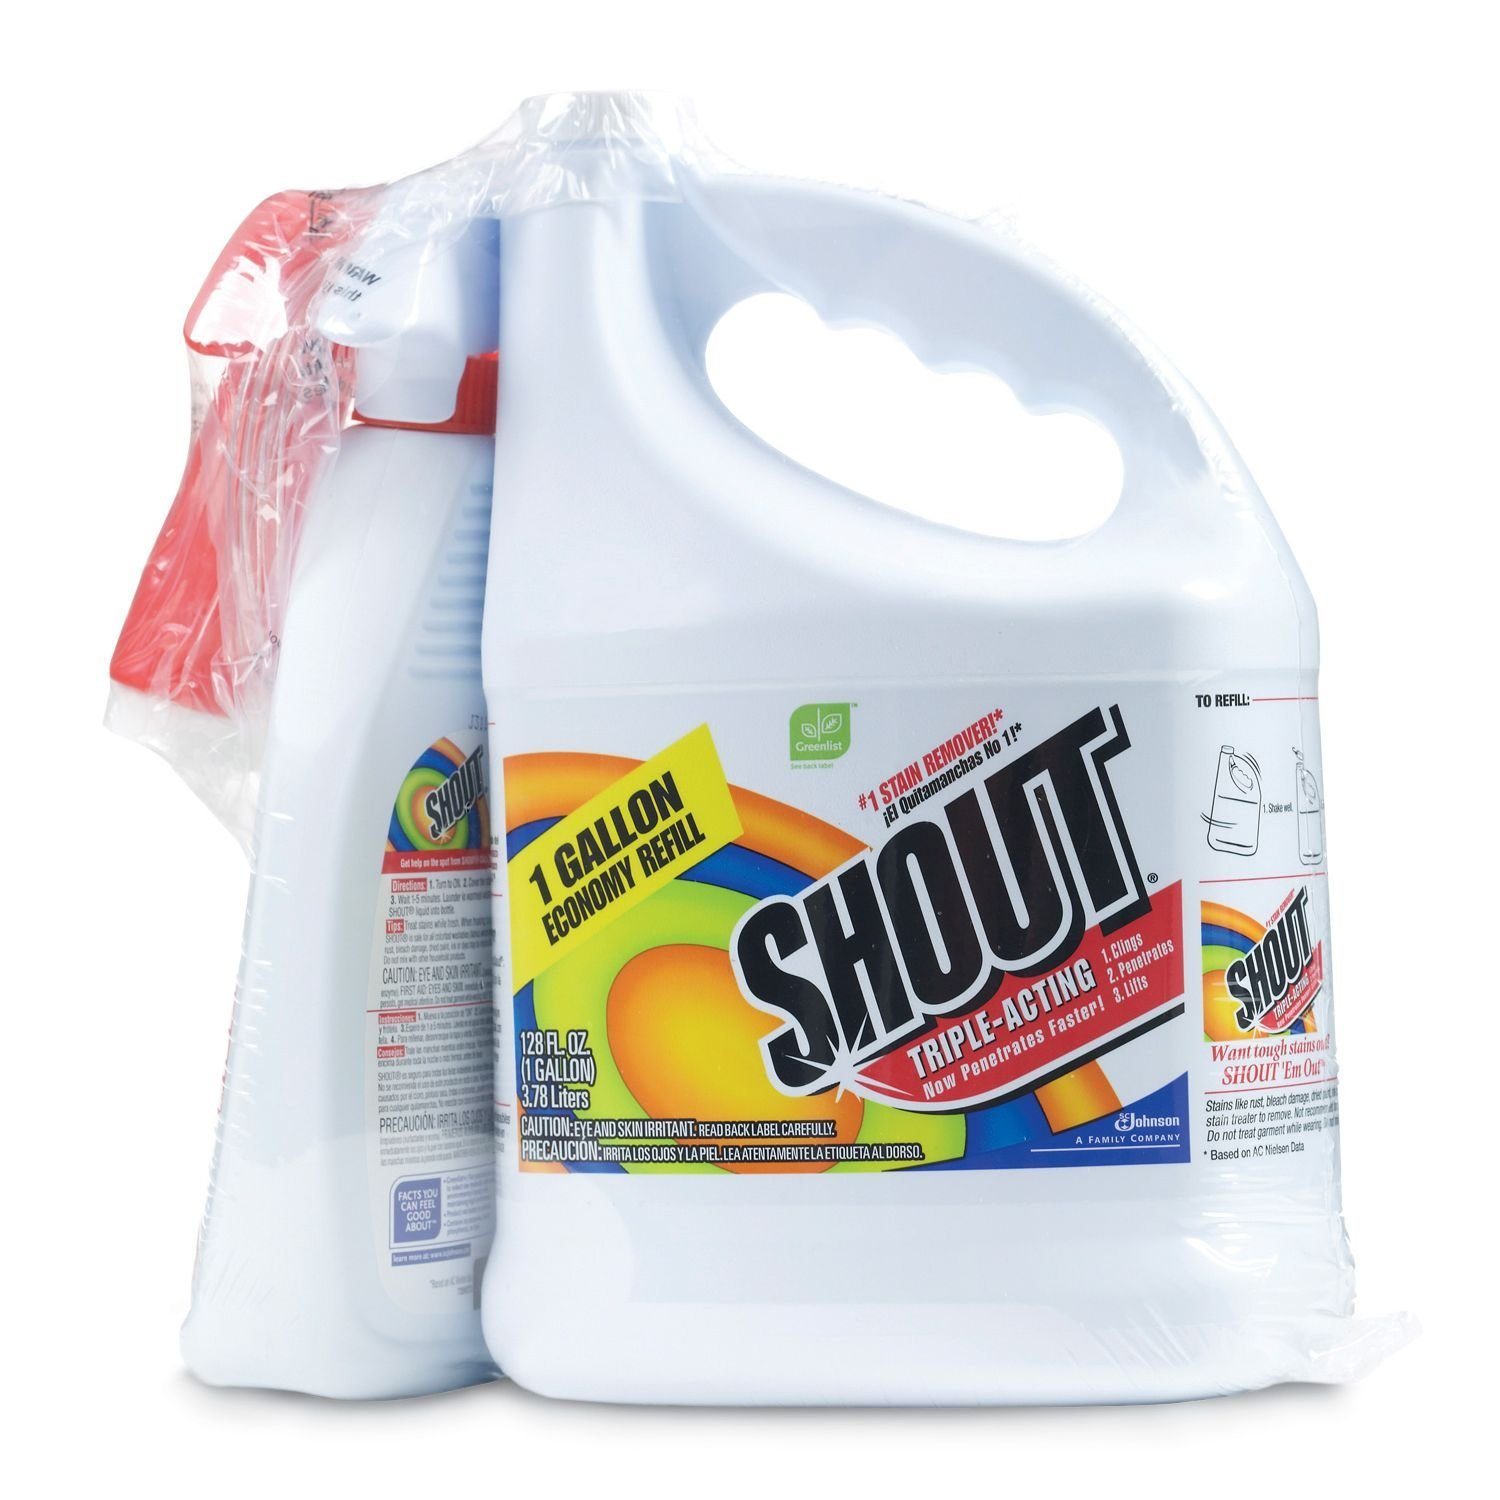 Amazon.com: Shout Stain Remover with Extendable Trigger Hose (128 oz. + 22 oz.): Home & Kitchen